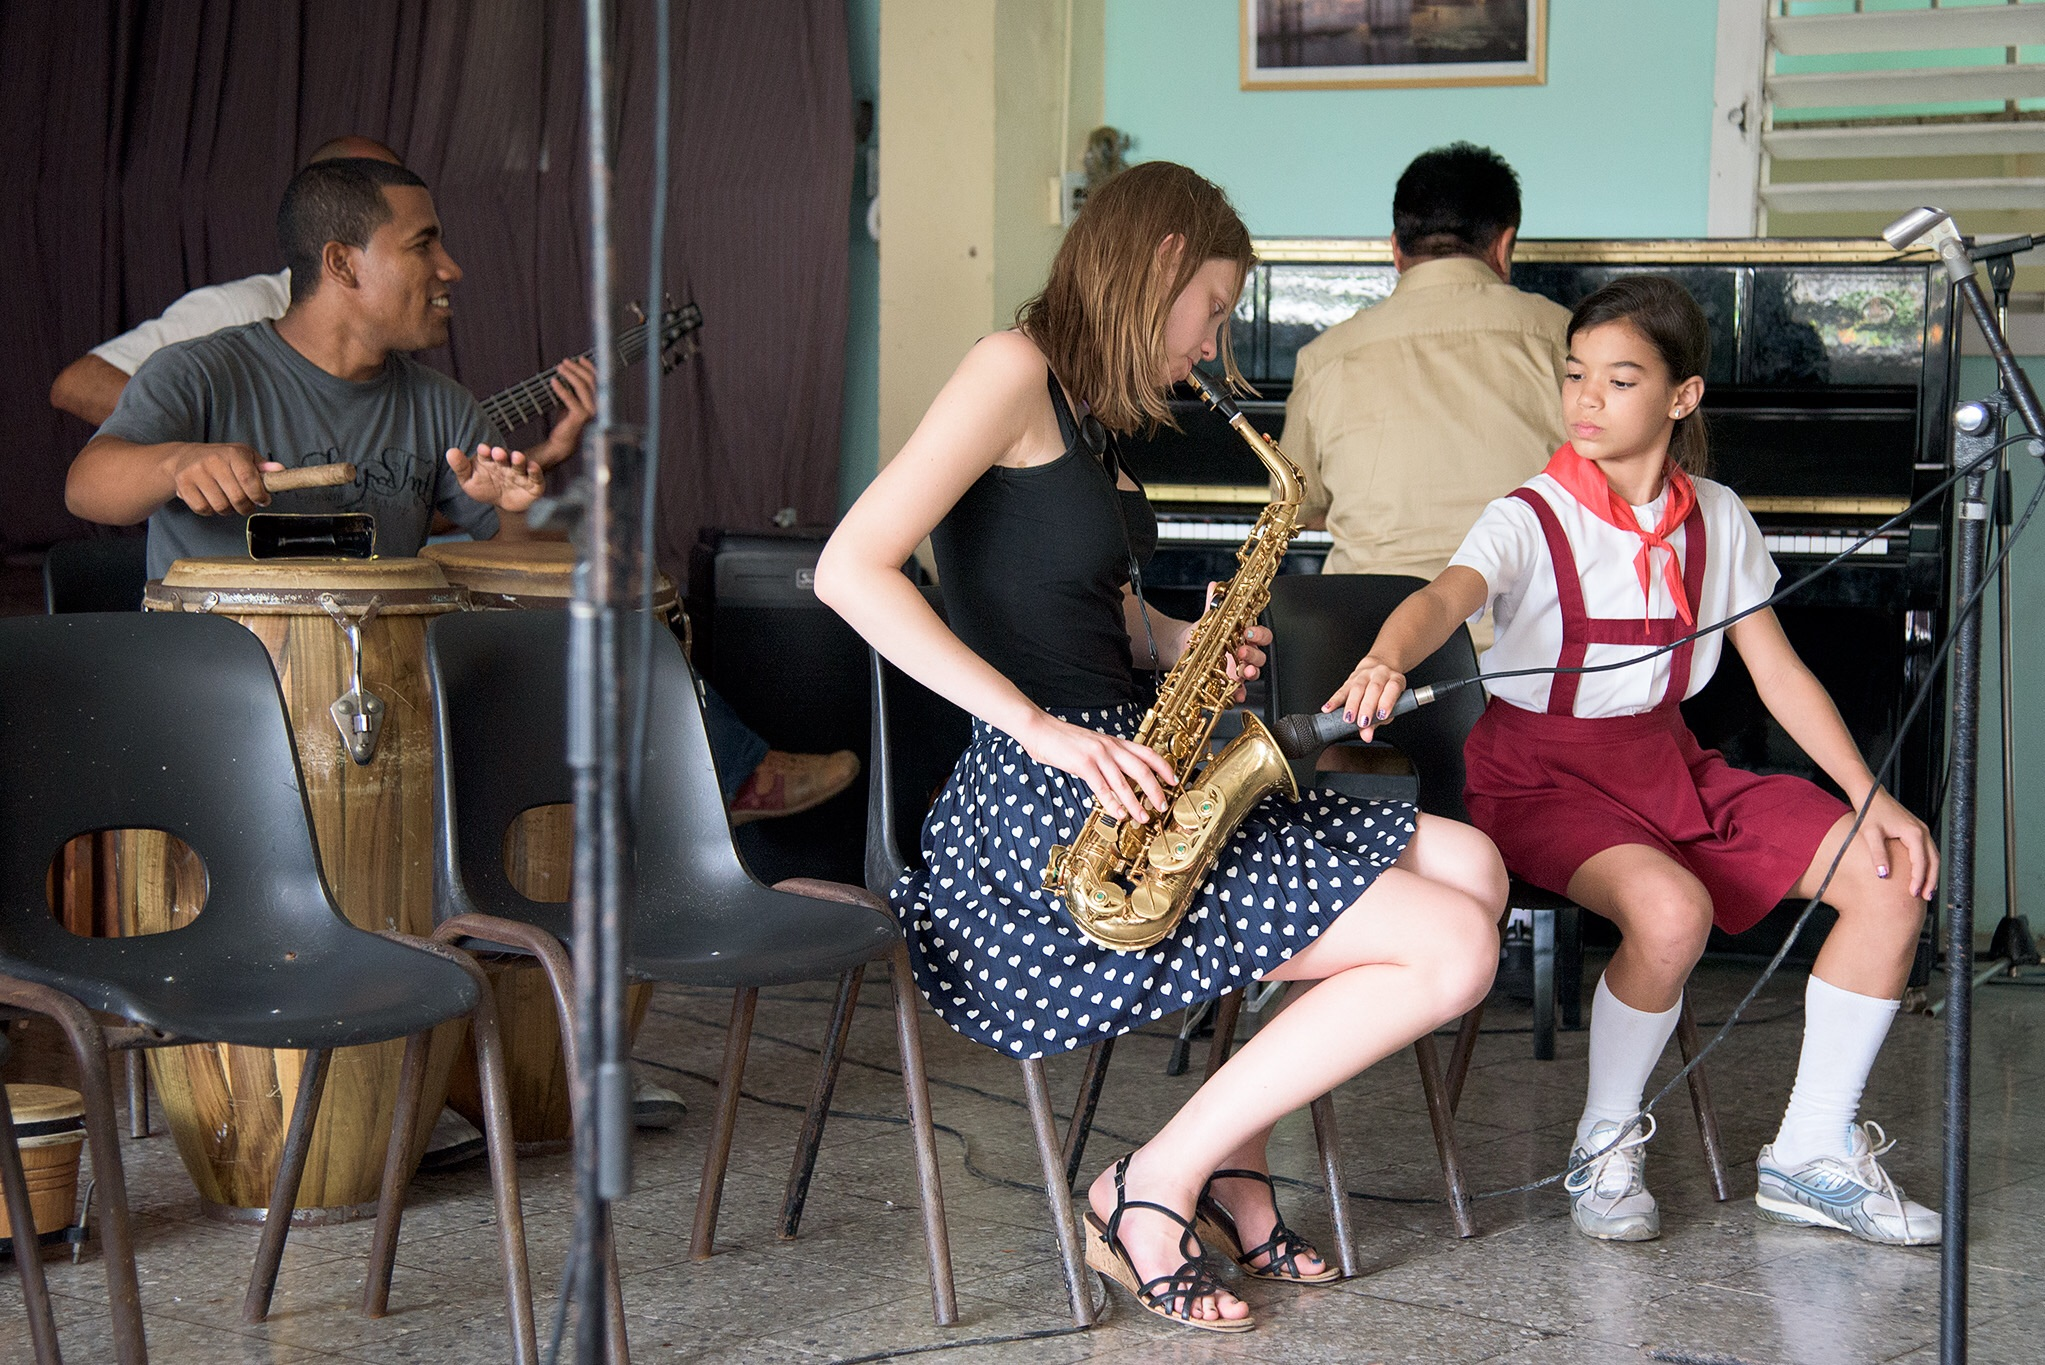 Our daughter had the opportunity to play with the students and teachers at a school for the arts in Matanzas, Cuba